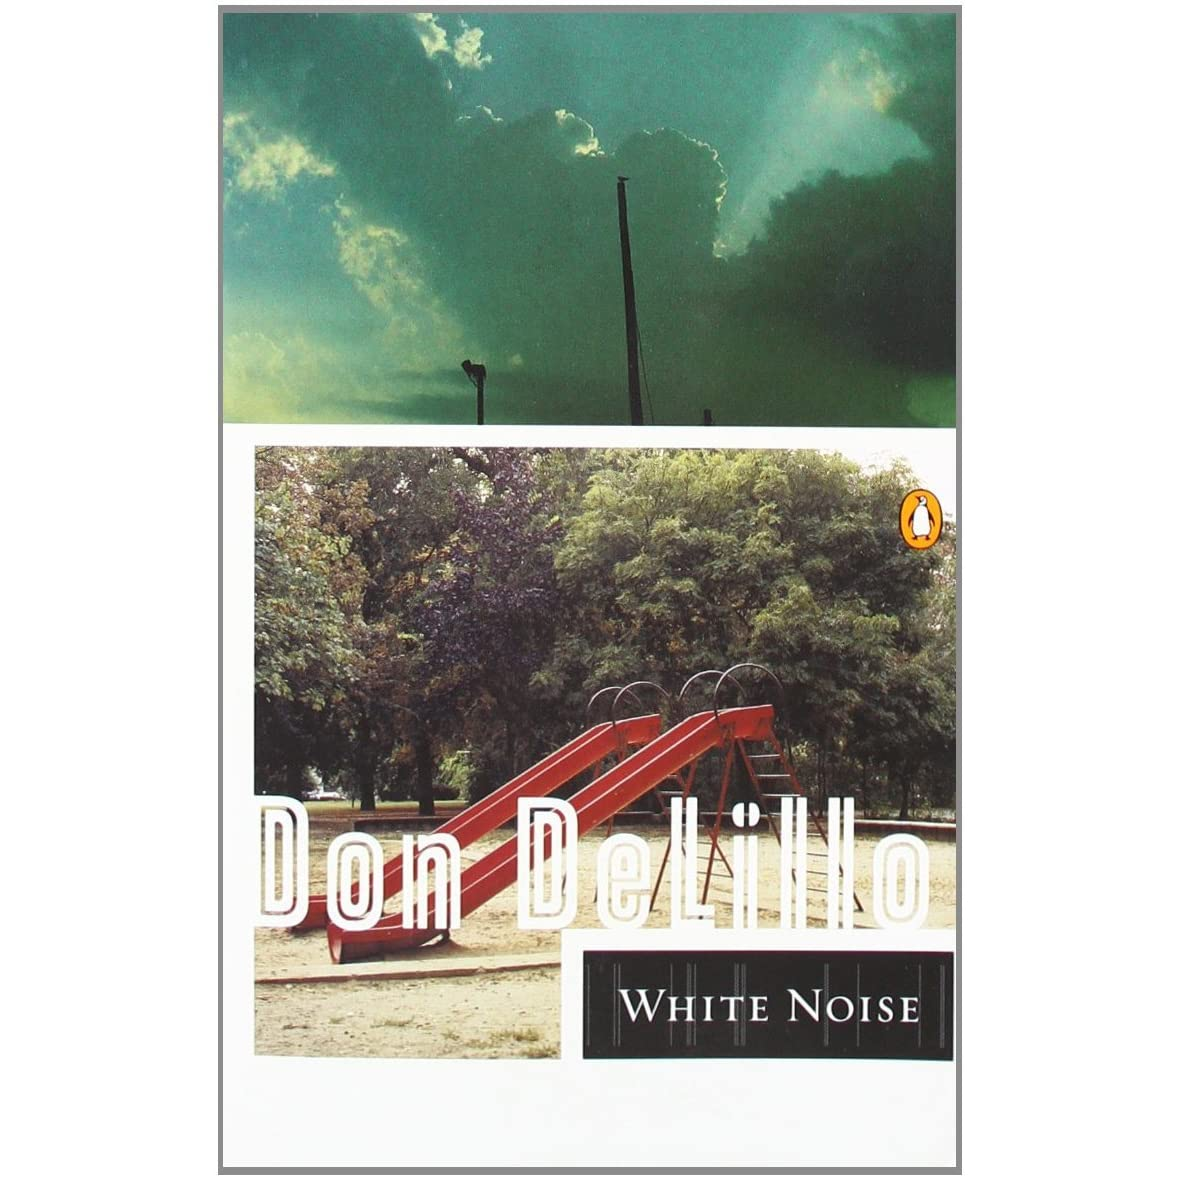 white noise review by don delillo 30 critics discuss  white noise (1985) don delillo  all of don delillo's fictions contain these conspiratorial models of the world  in white noise, as in all his novels, delillo absorbs the jargon of myriad disciplines and reprocesses them in a terminal deadpan his is a hard-edged, unsmiling kind of satire.